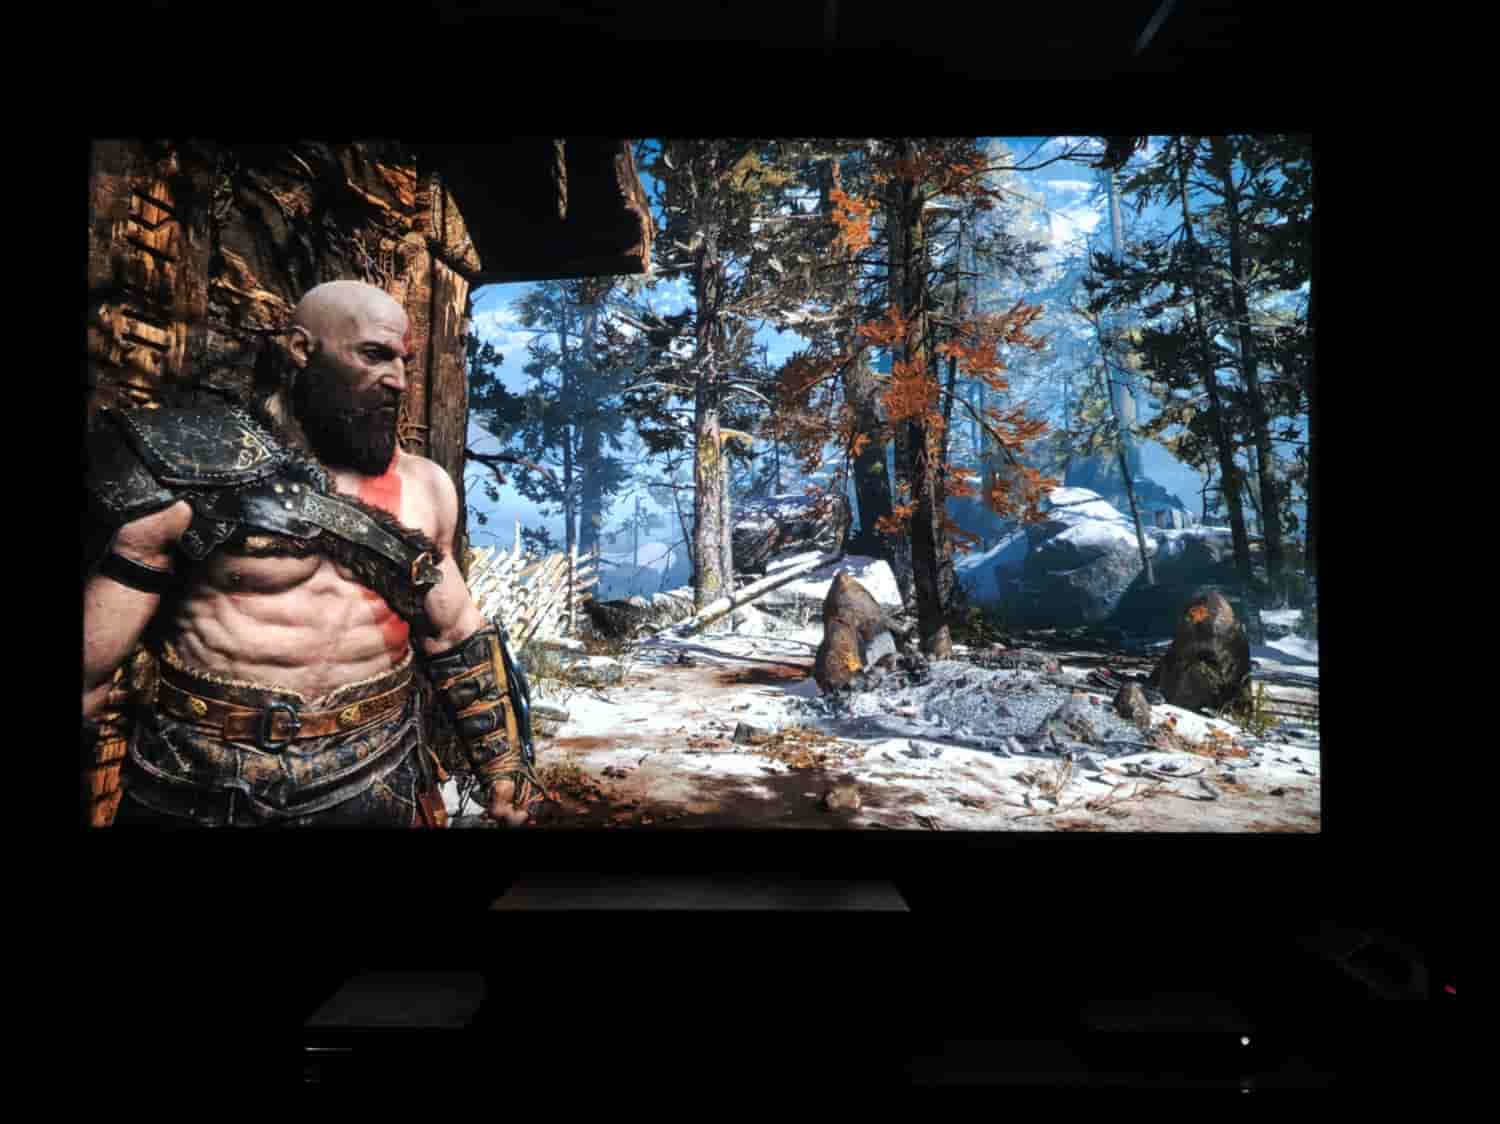 Epson Home Cinema 5040UB Projecting God Of War